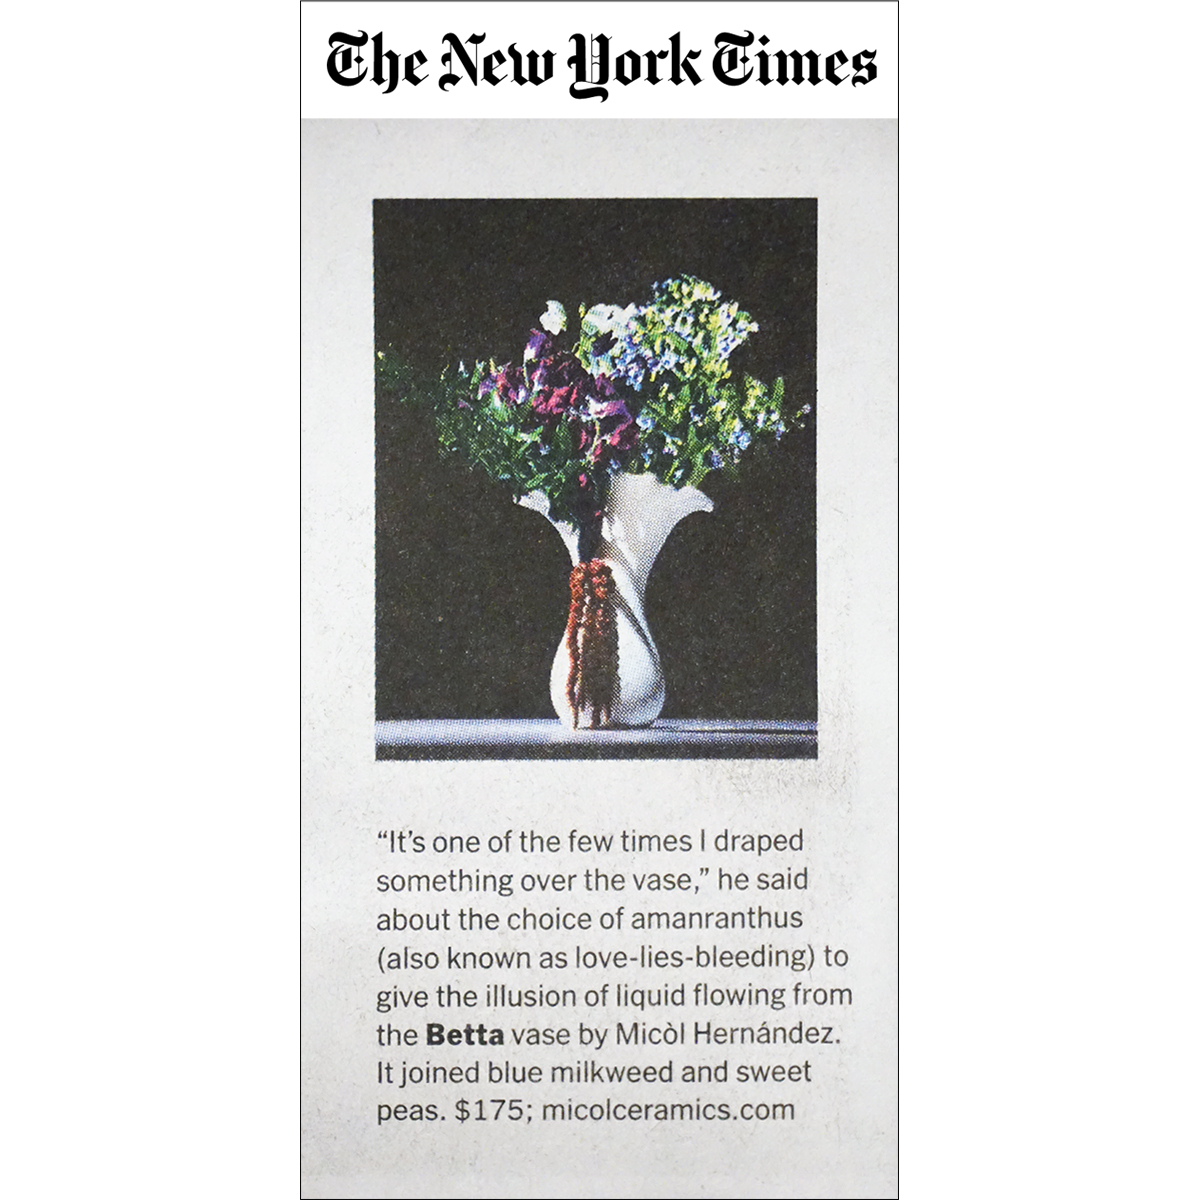 The New York Times, May 2019